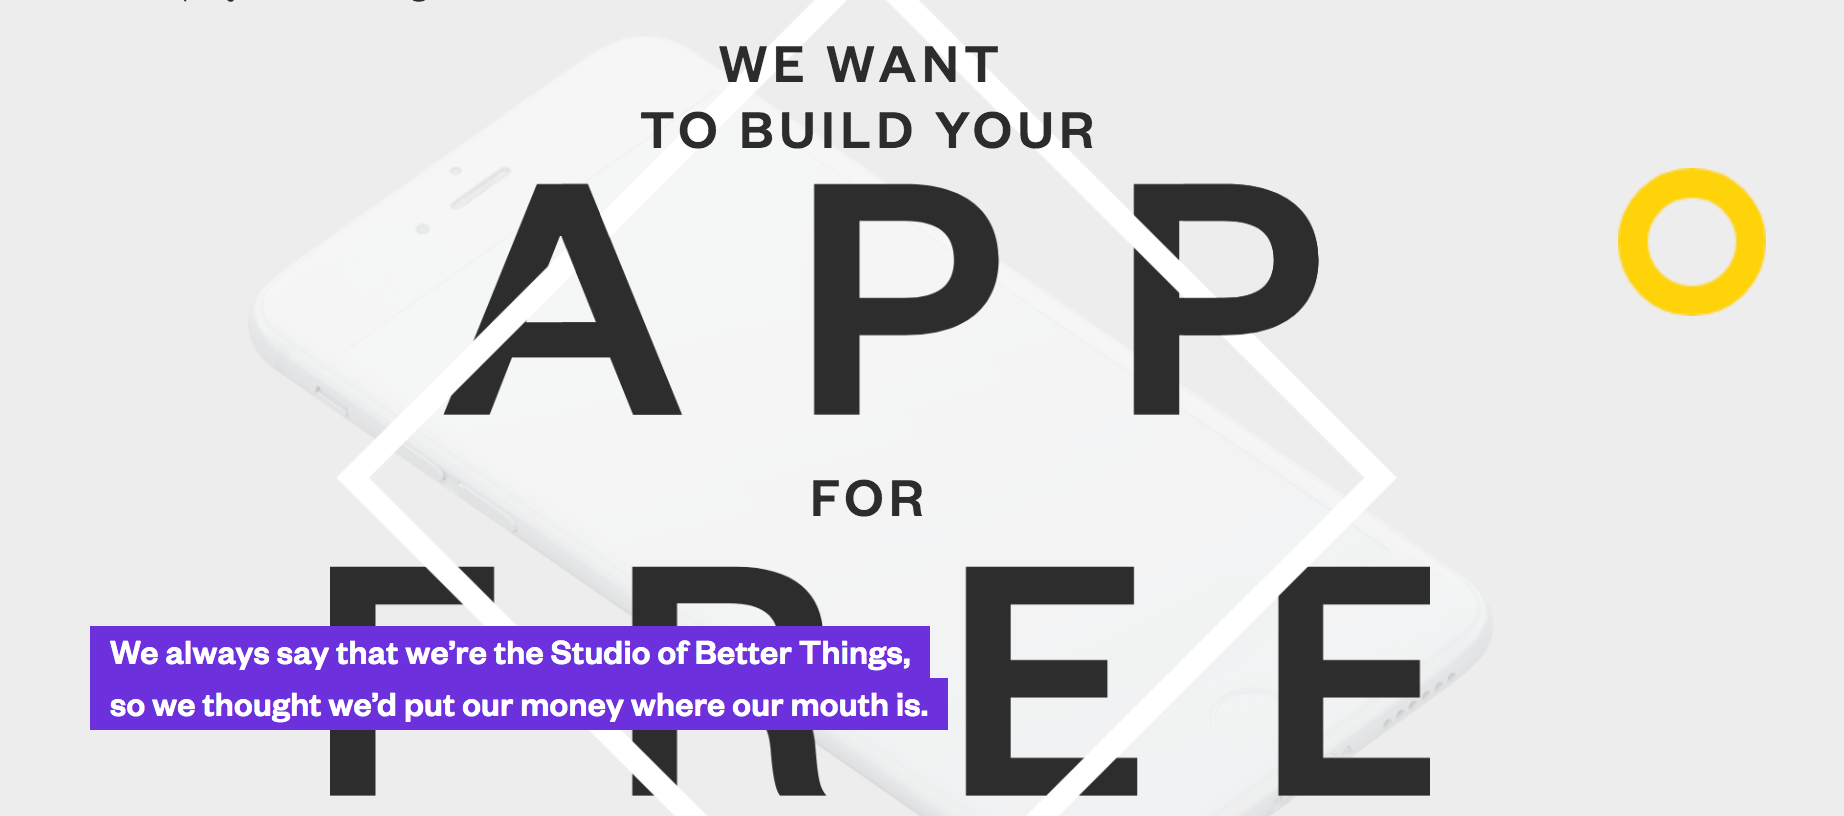 Build My App Competition: How technology can improve lives